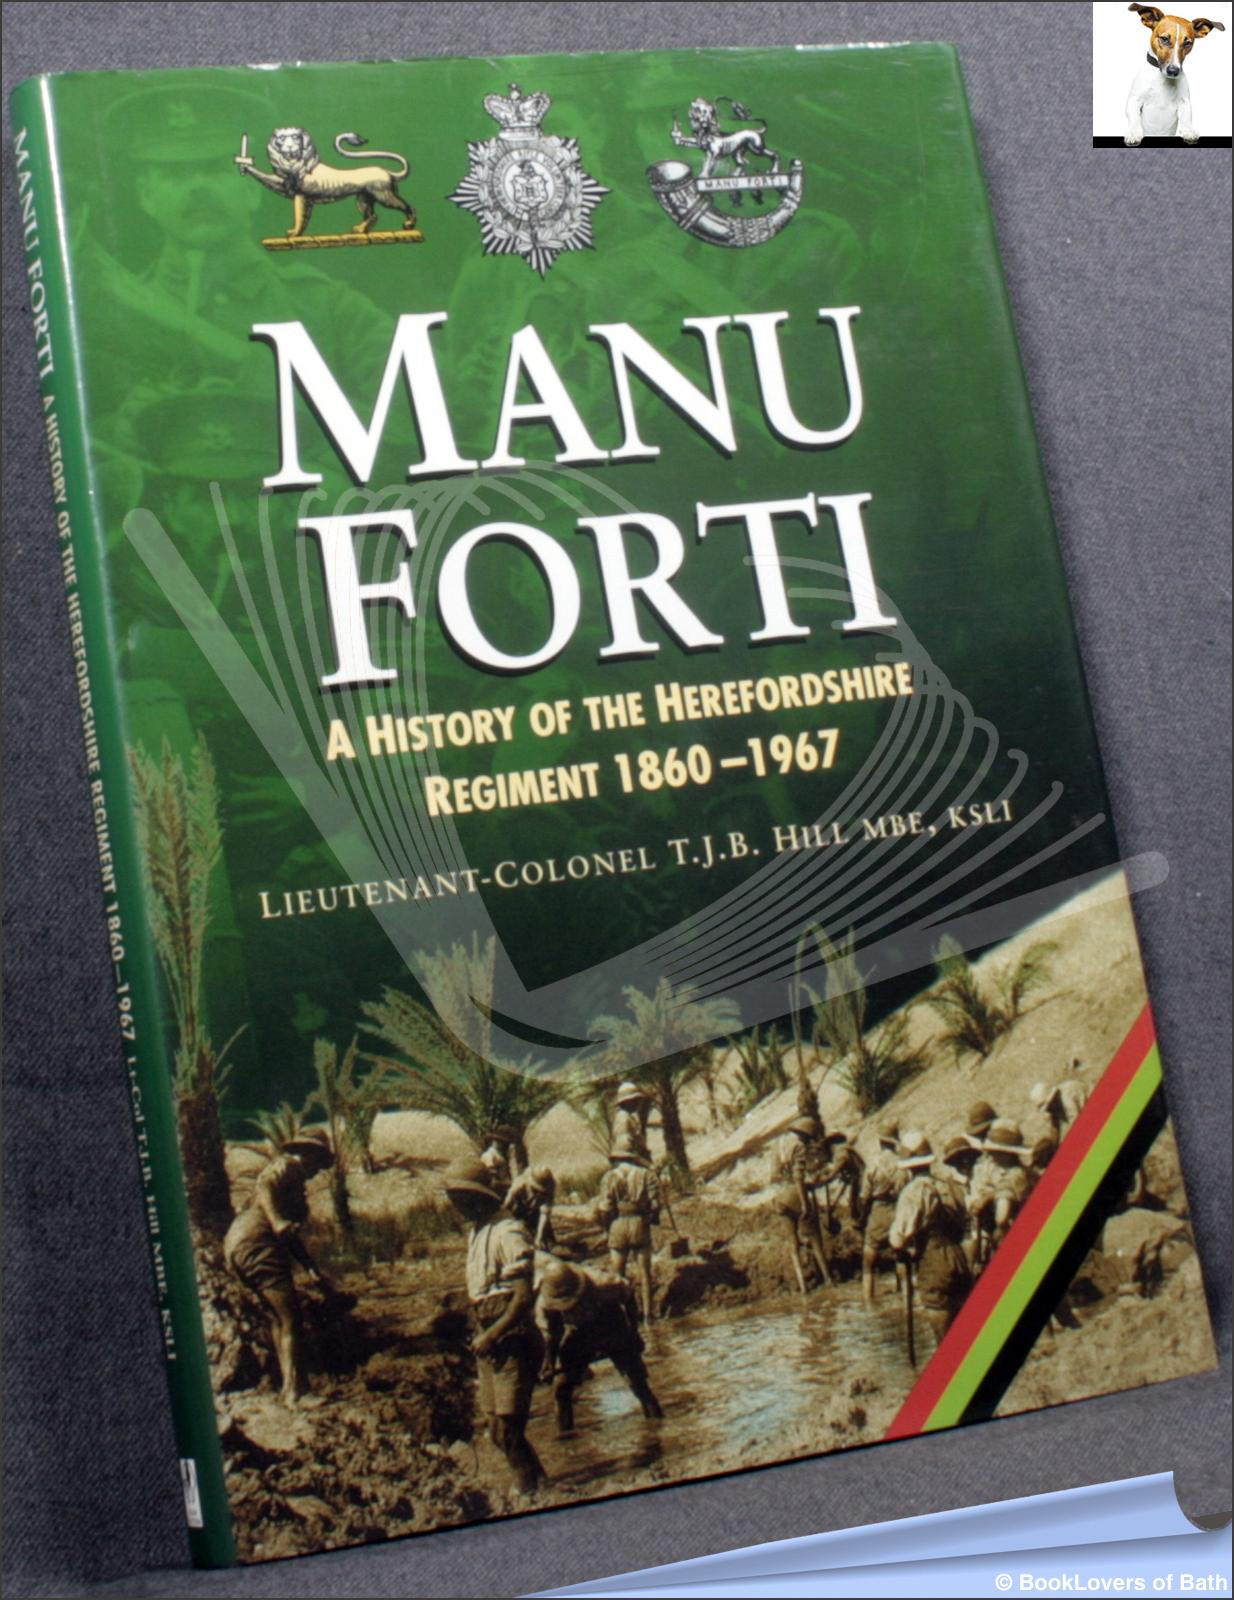 Manu Forti: A History of the Herefordshire Regiment 1860-1967 - T. J. B Hill